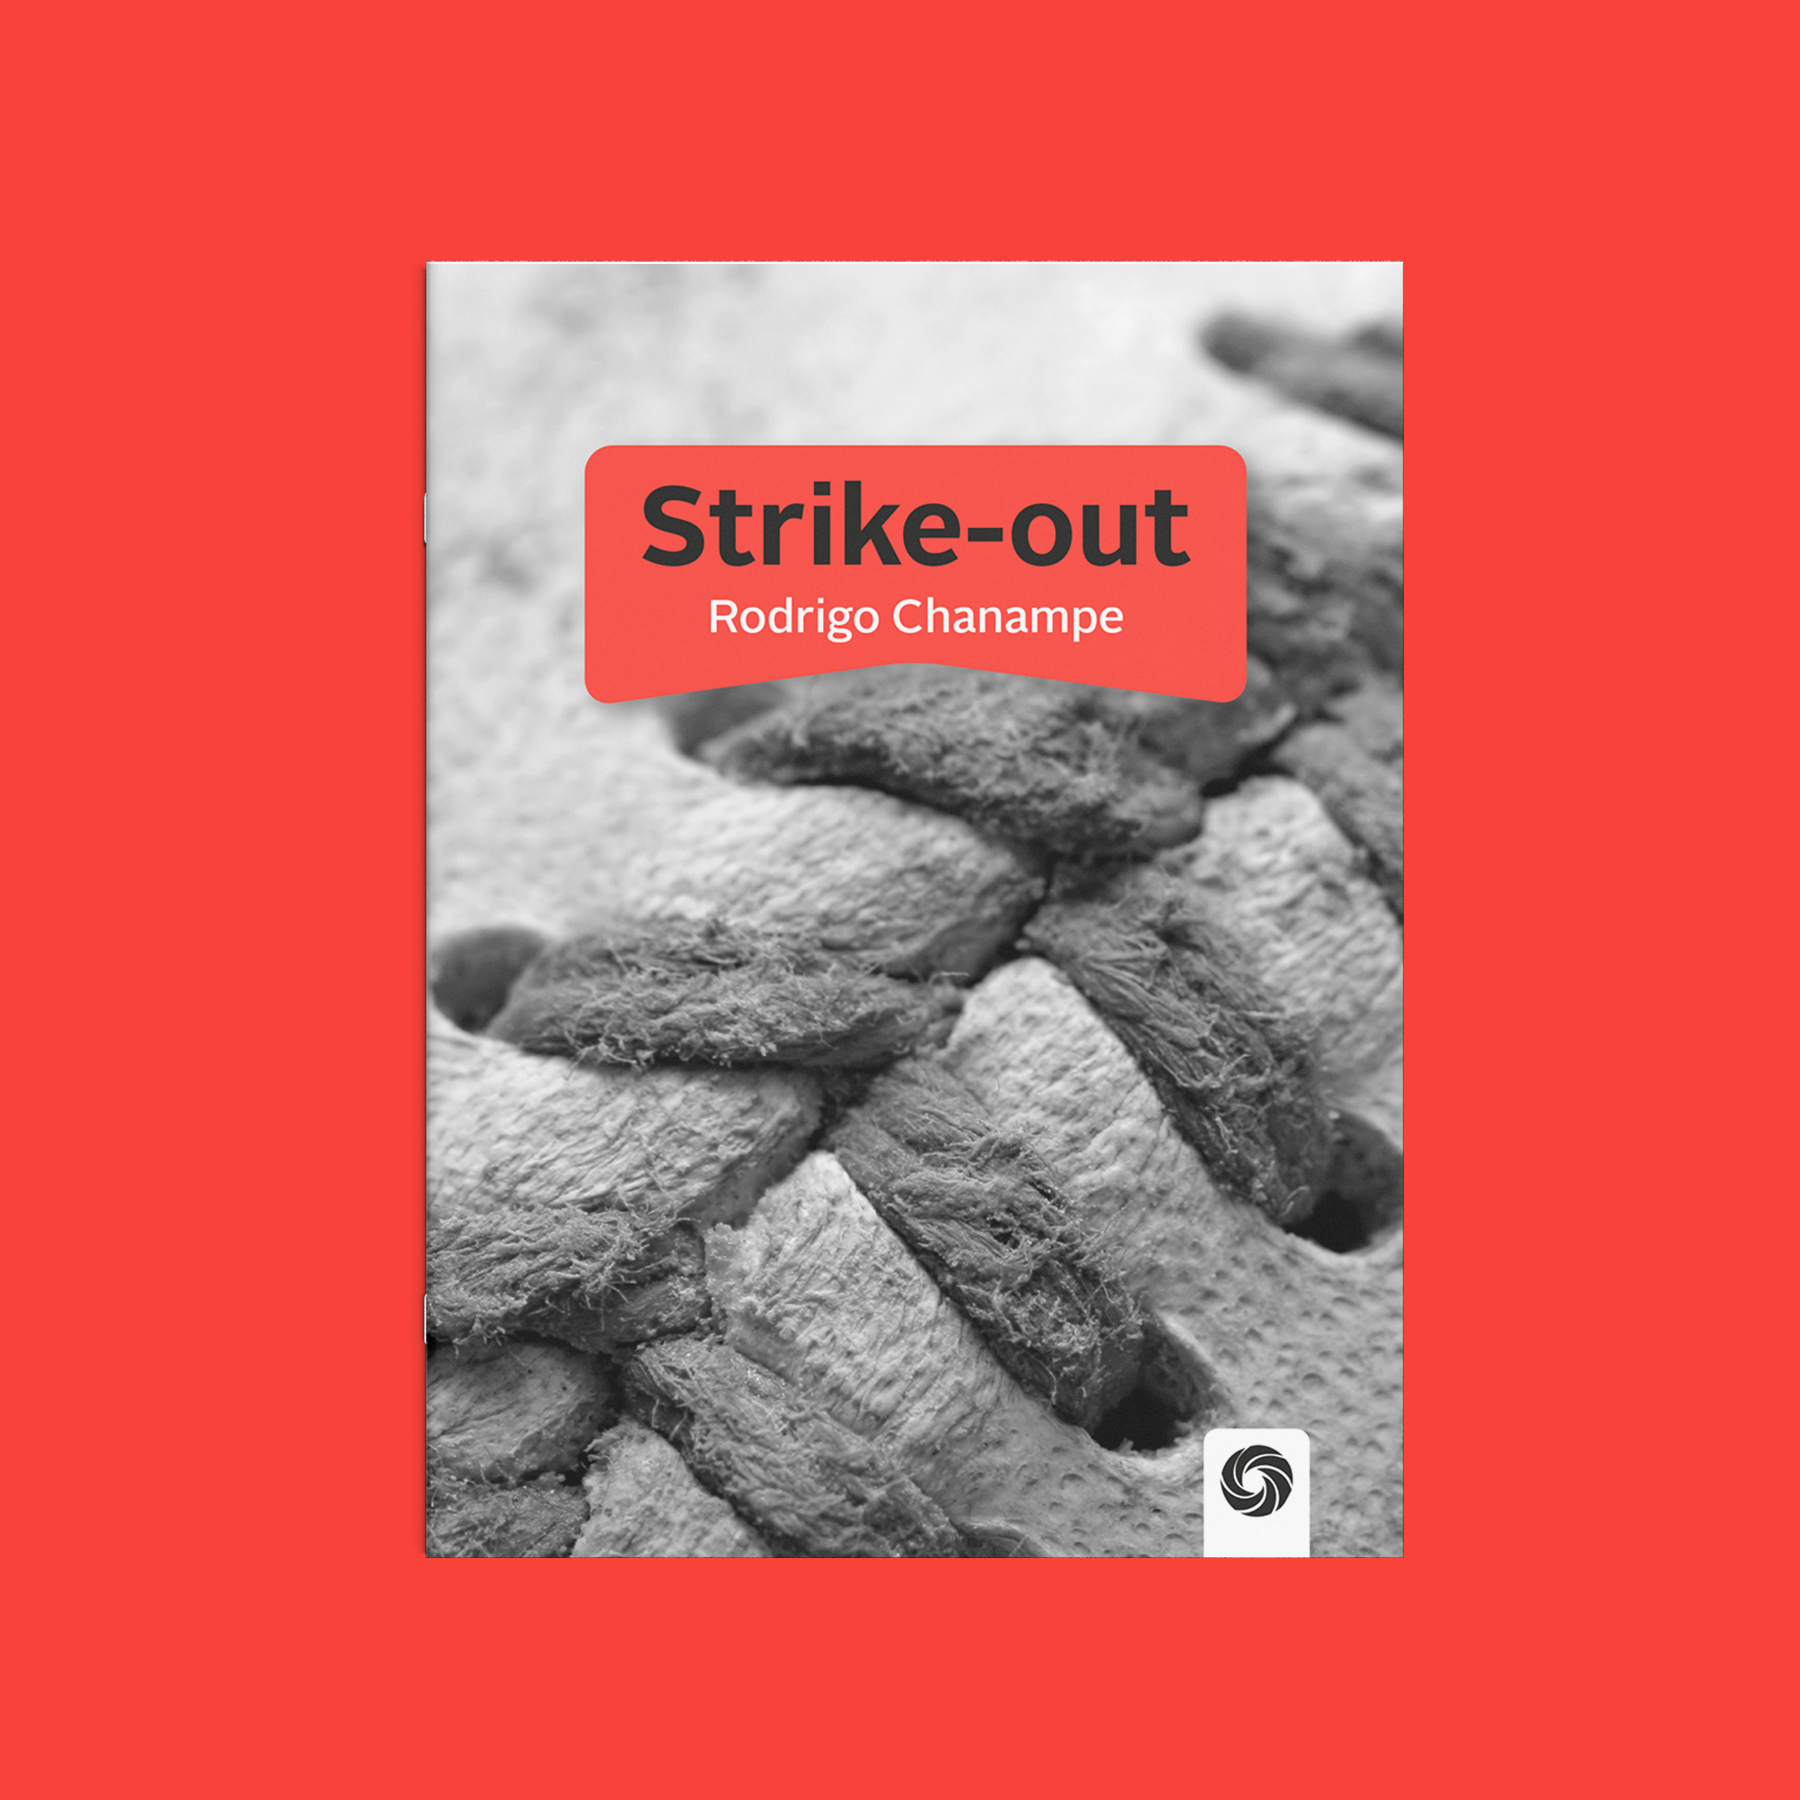 Strike-out